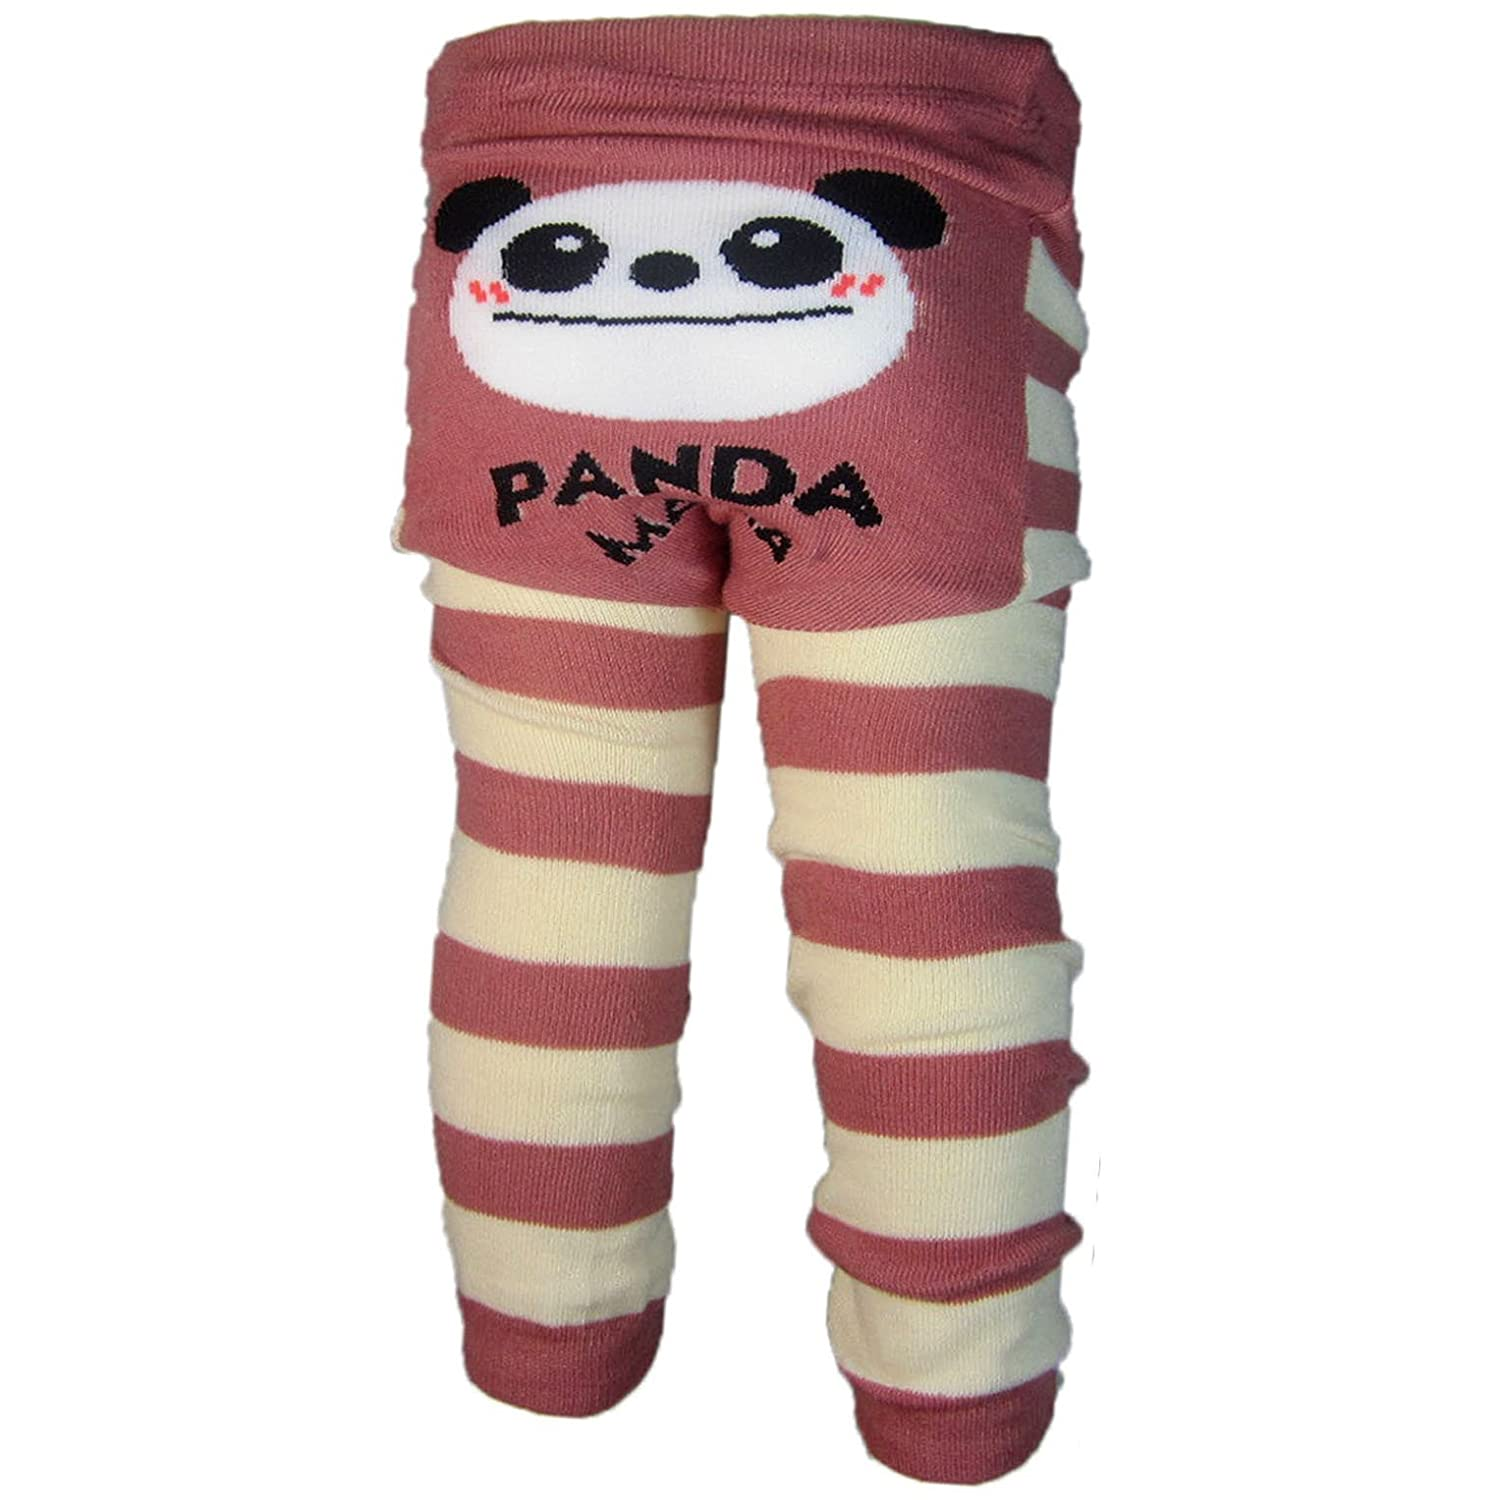 3 Pants 0-24 Months Baby Boys Toddler Leggings trousers Knitted pants G6H2H3 12-18 Months Backbuy